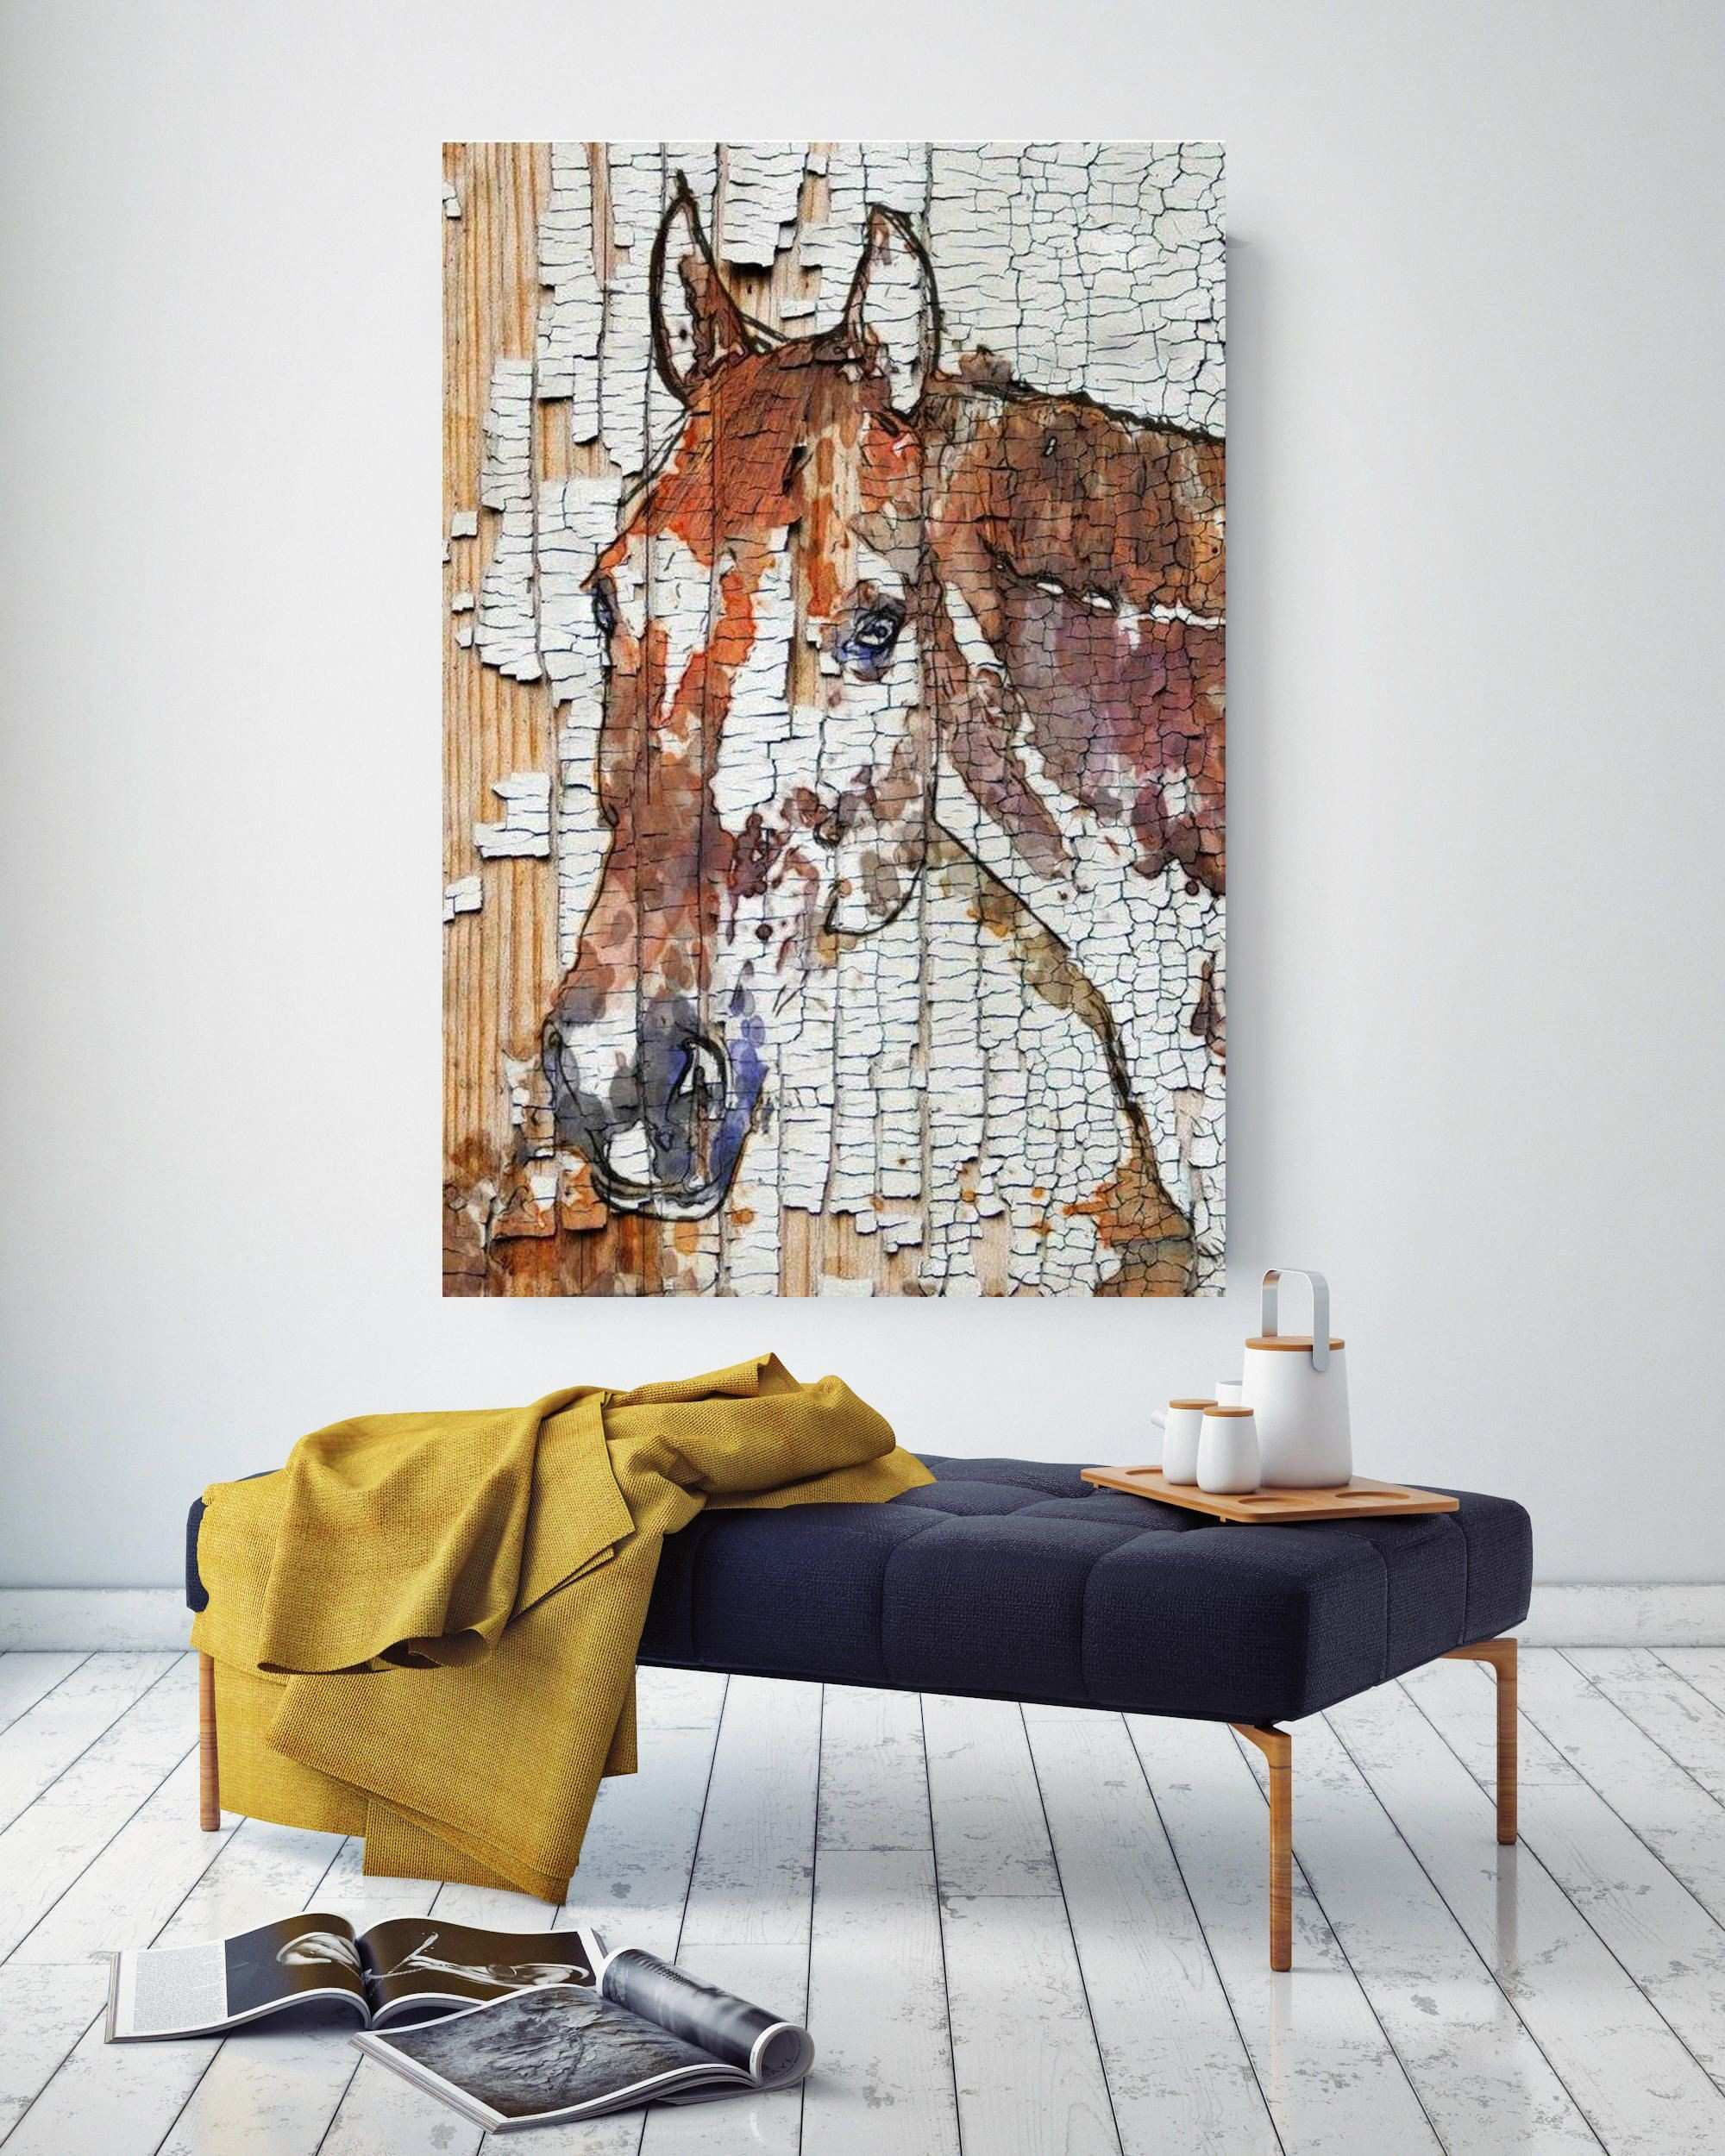 Wall Prints for Living Room Best Of Amazing Wall Art Decor for Living Room In Metal Wall Art Panels